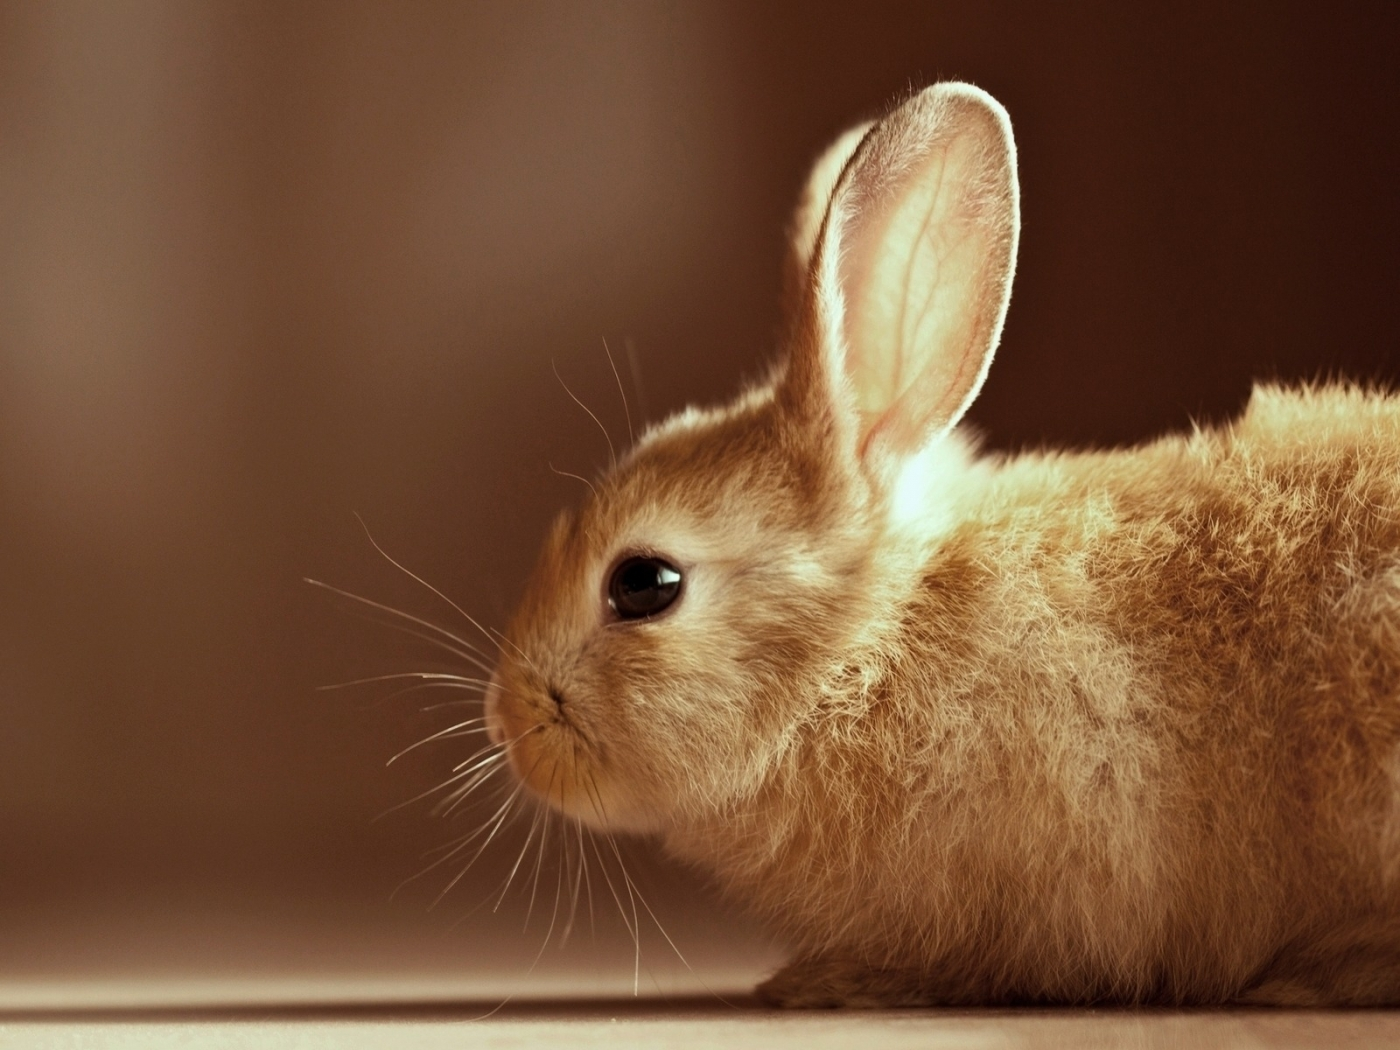 32023 download wallpaper Animals, Rabbits screensavers and pictures for free